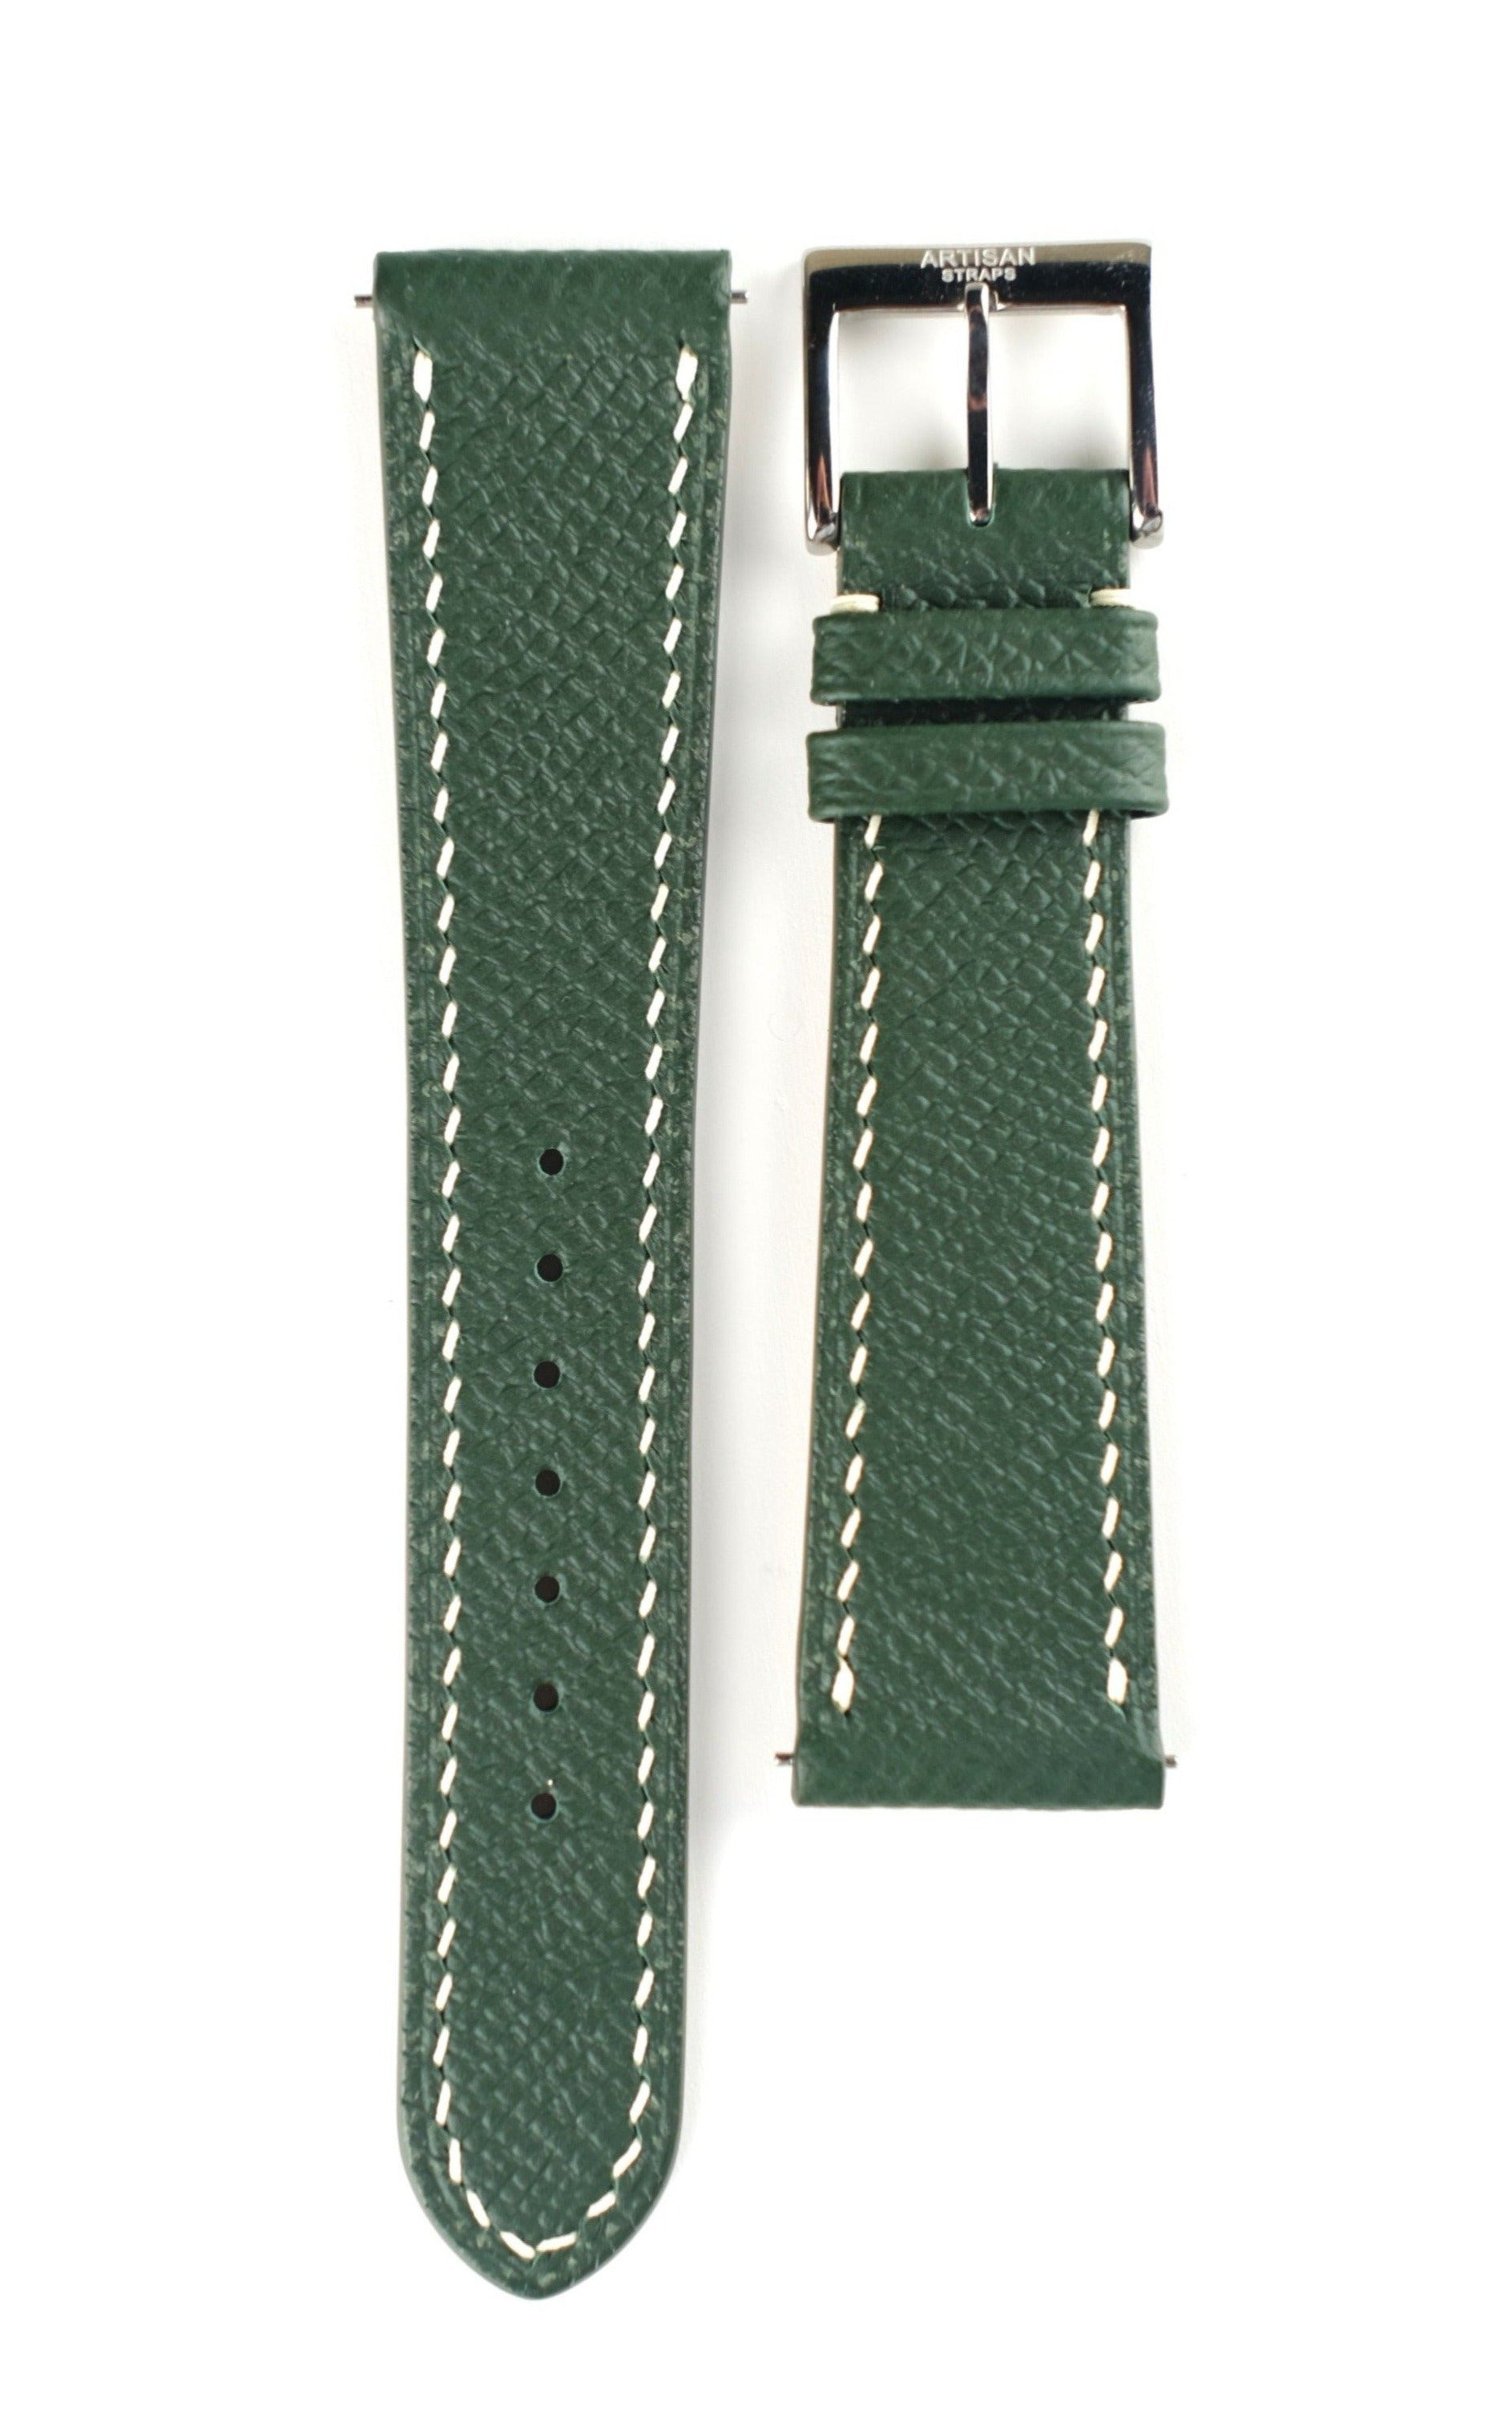 Forest Green Epsom Calf Leather Strap - Artisan Straps